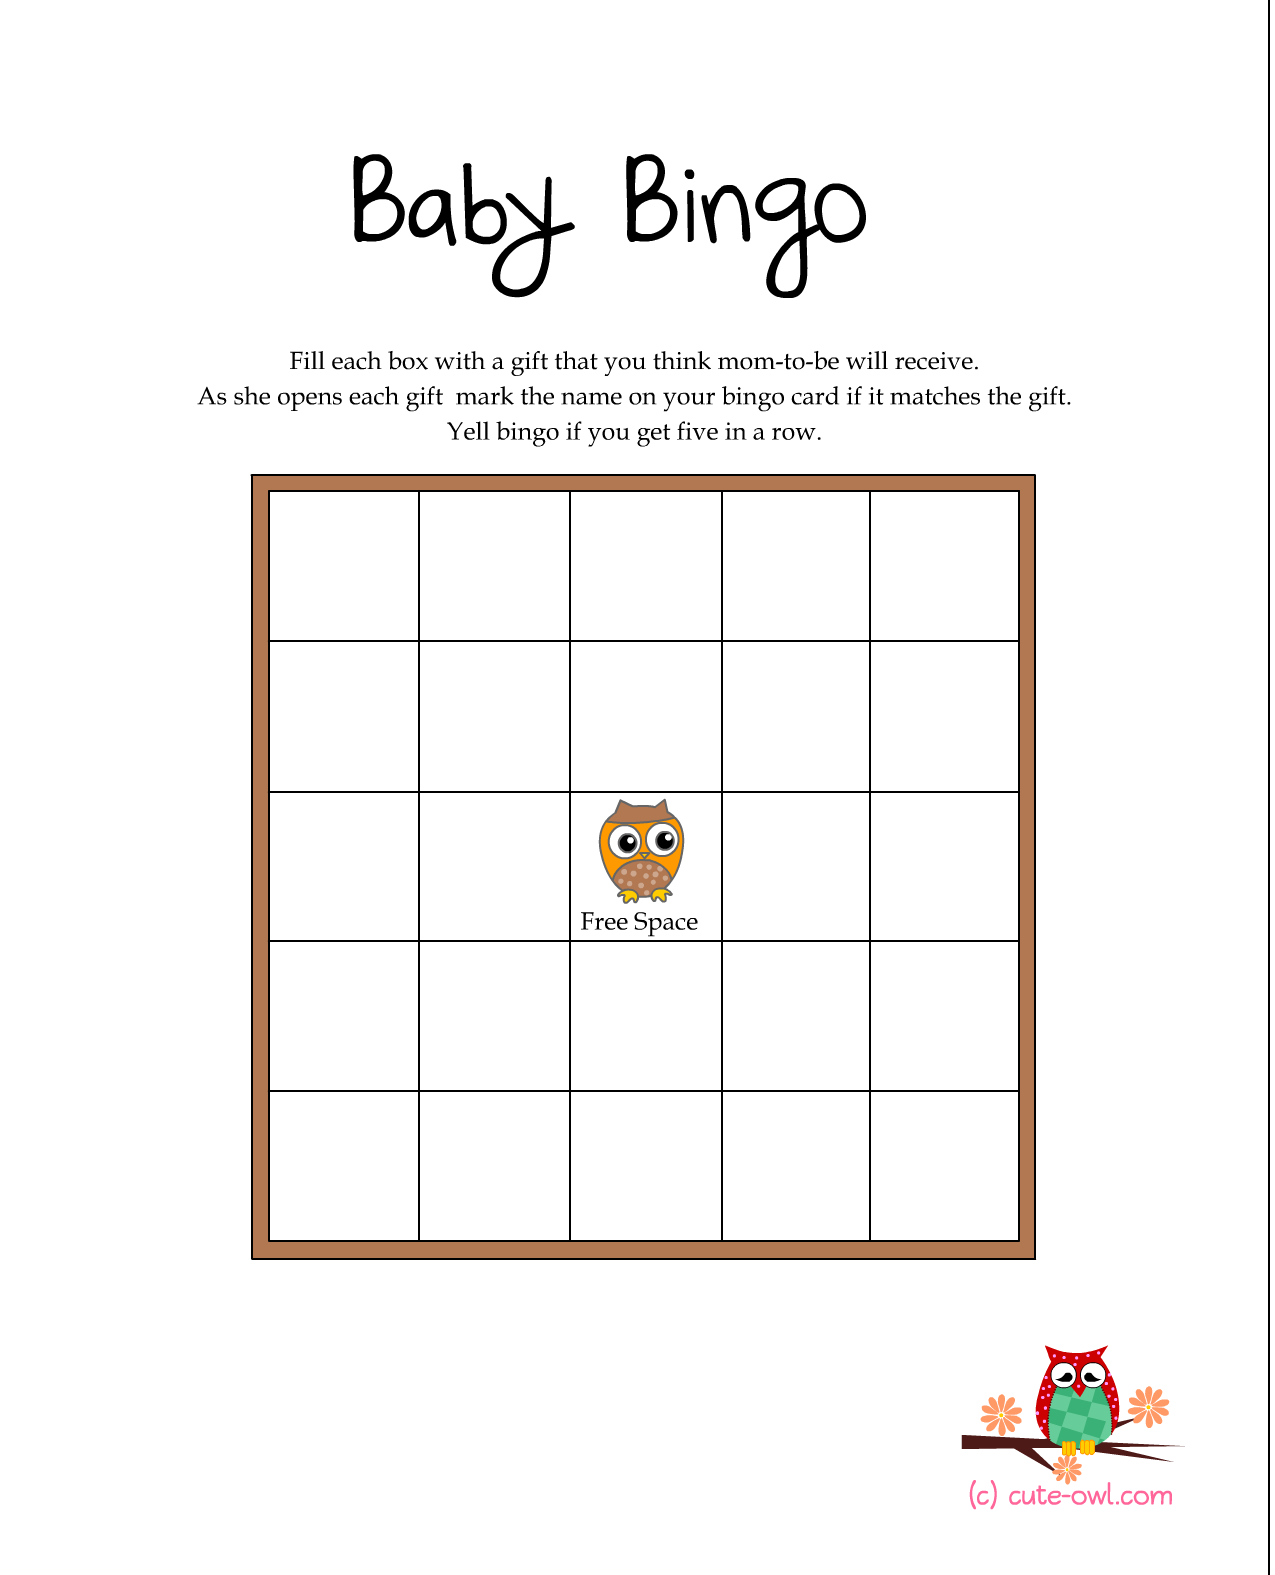 Worksheets Baby Shower Games Printable Worksheets free printable owl themed baby shower games woodland animal games